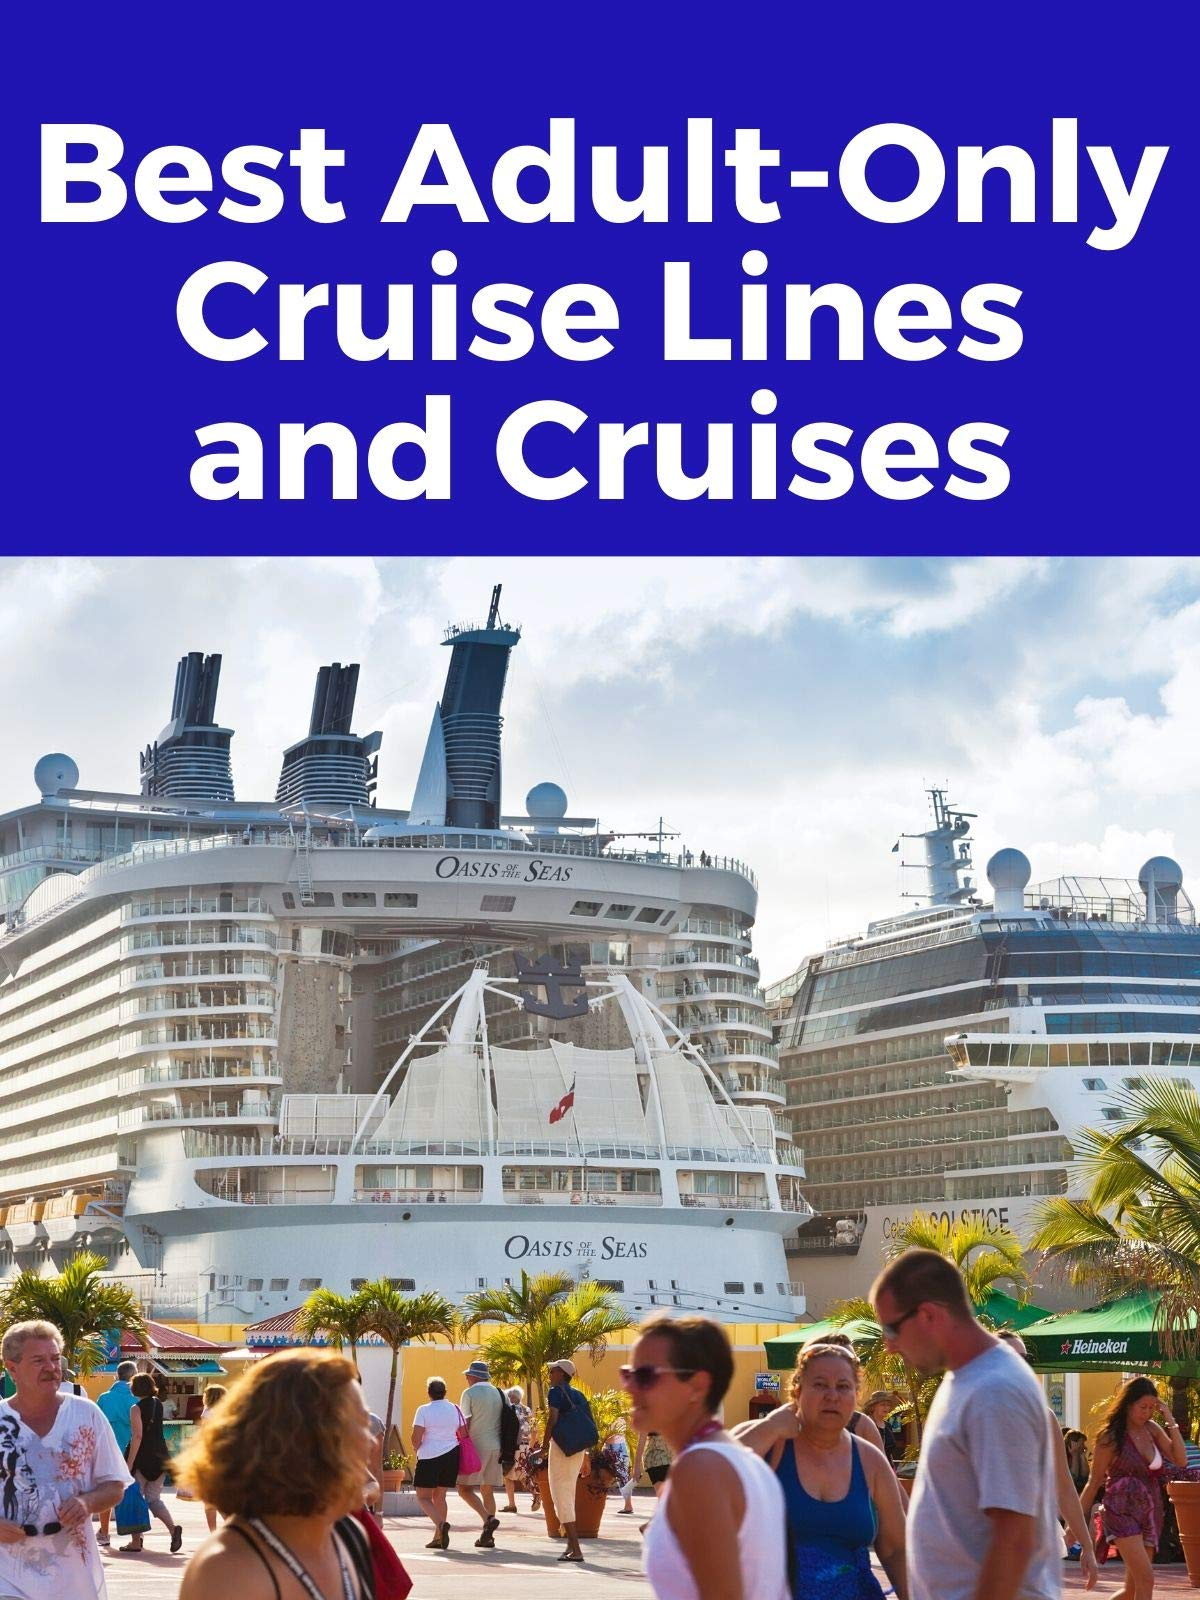 Clip: Best Adult-Only Cruise Lines and Cruises